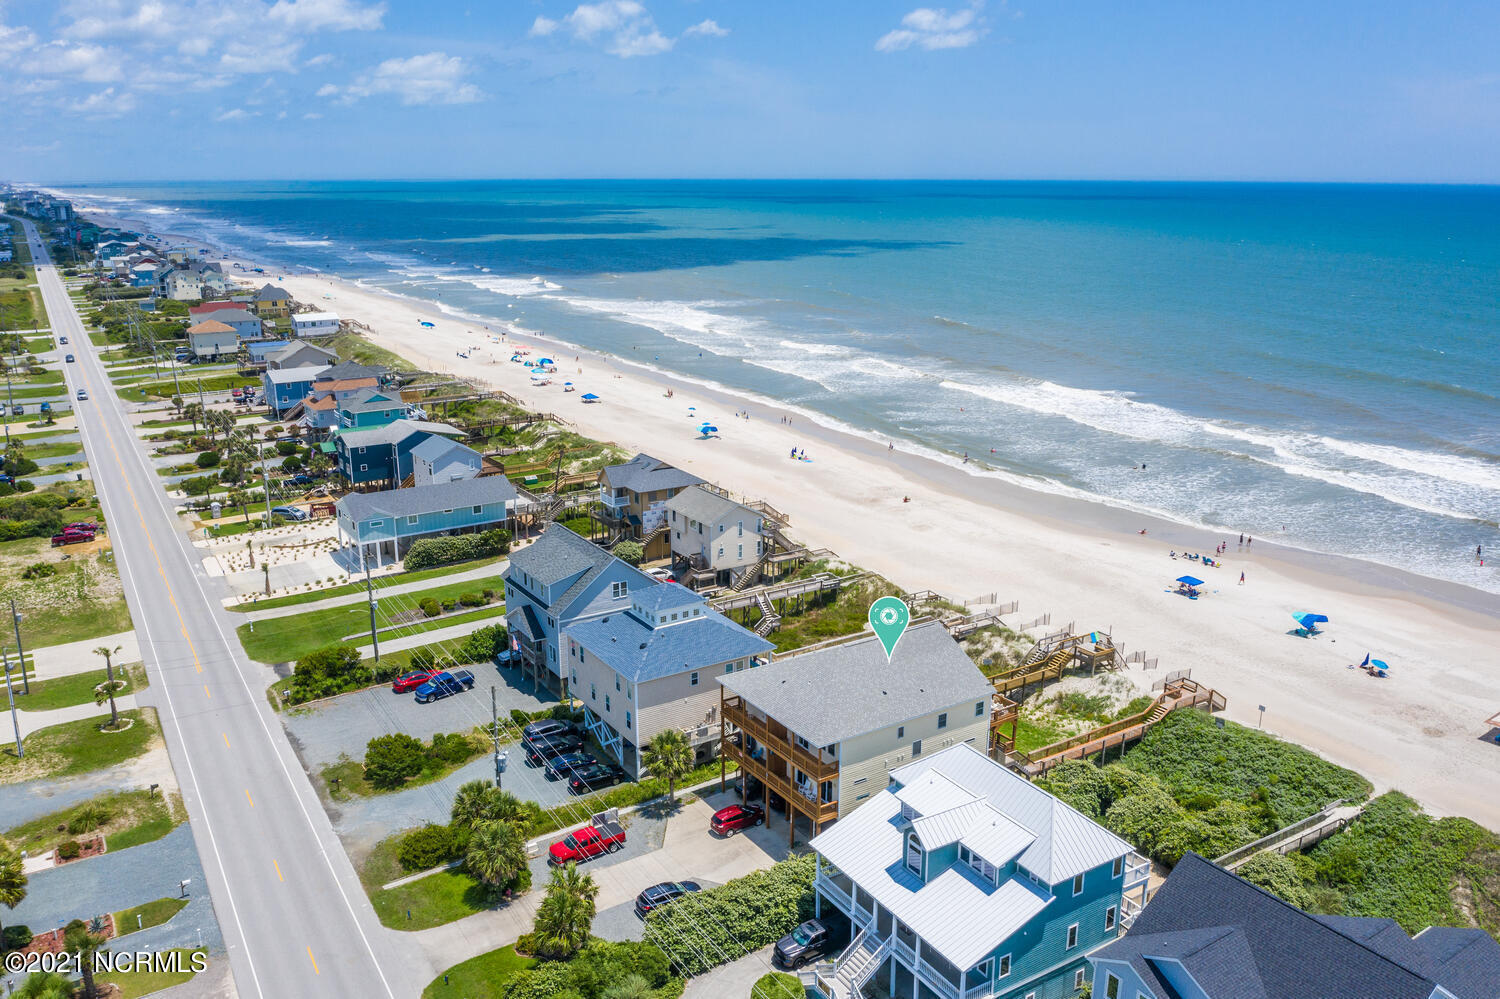 3724 Island Drive, North Topsail Beach, North Carolina 28460, 5 Bedrooms Bedrooms, 8 Rooms Rooms,5 BathroomsBathrooms,Townhouse,For sale,Island,100278106